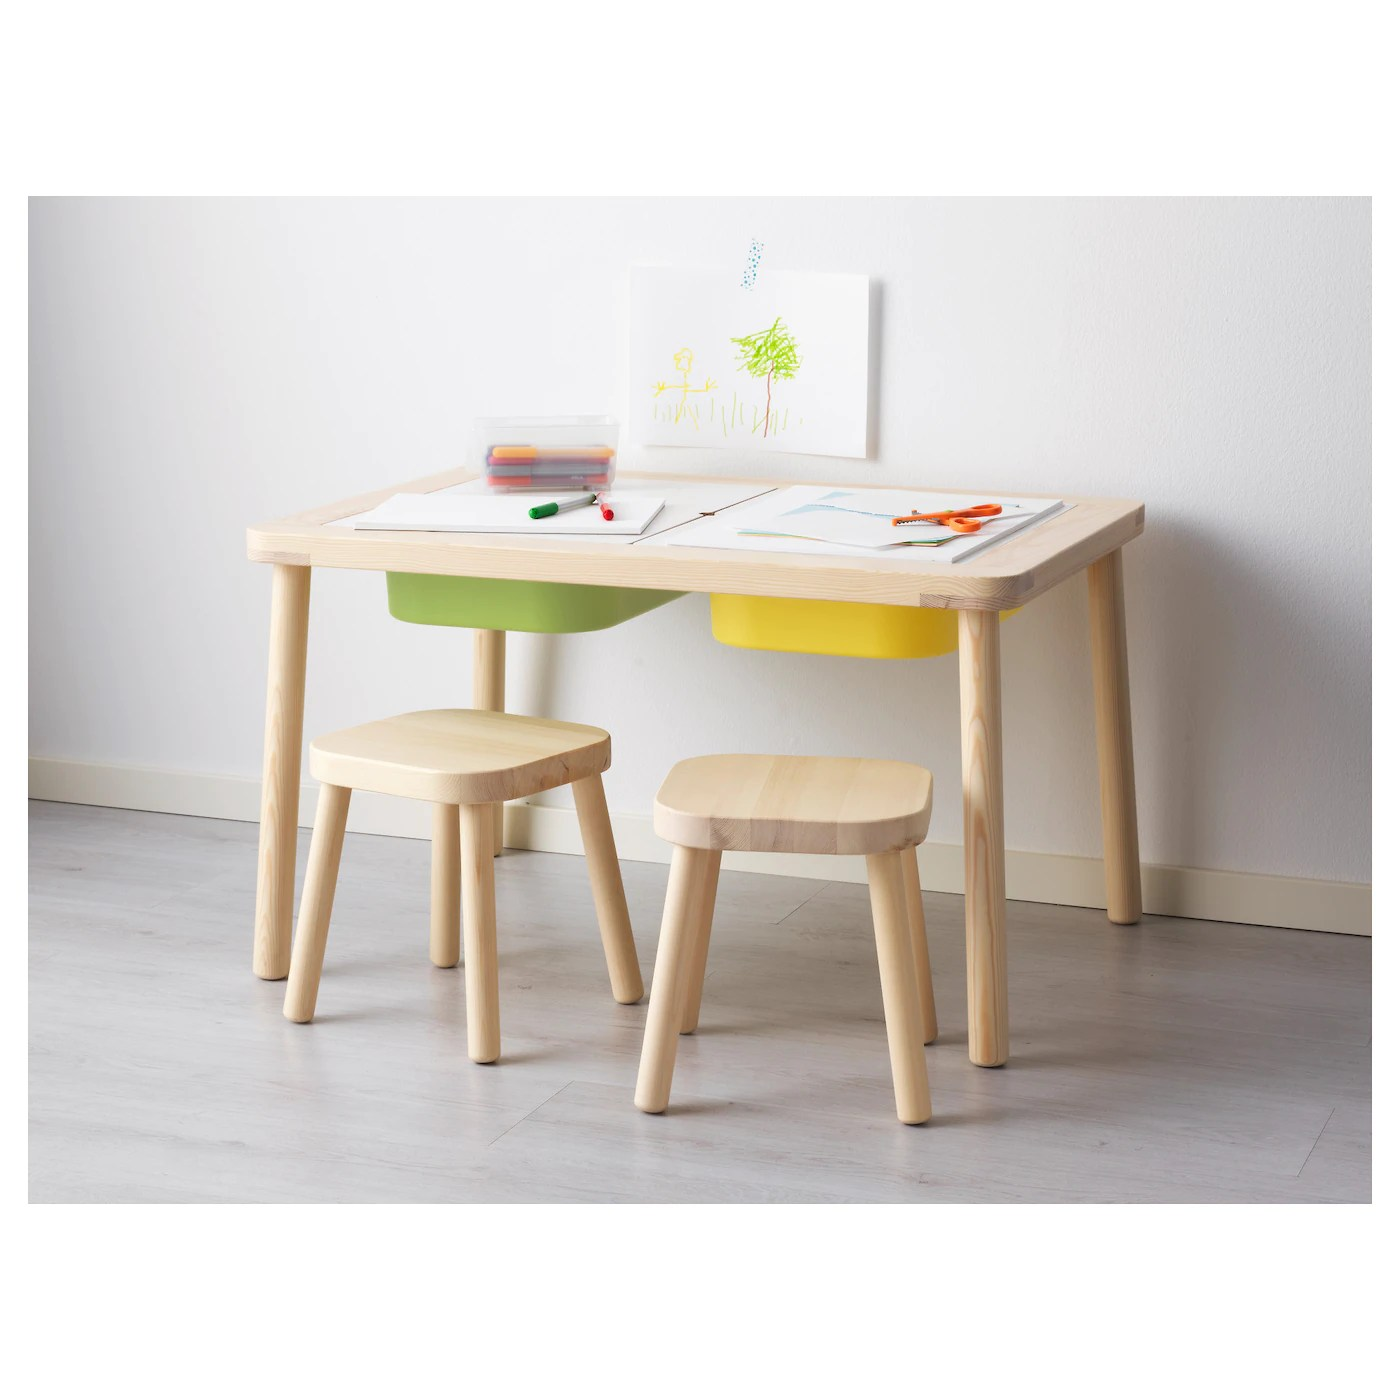 Child's Table And Chairs Flisat Children 39s Table 83 X 58 Cm Ikea